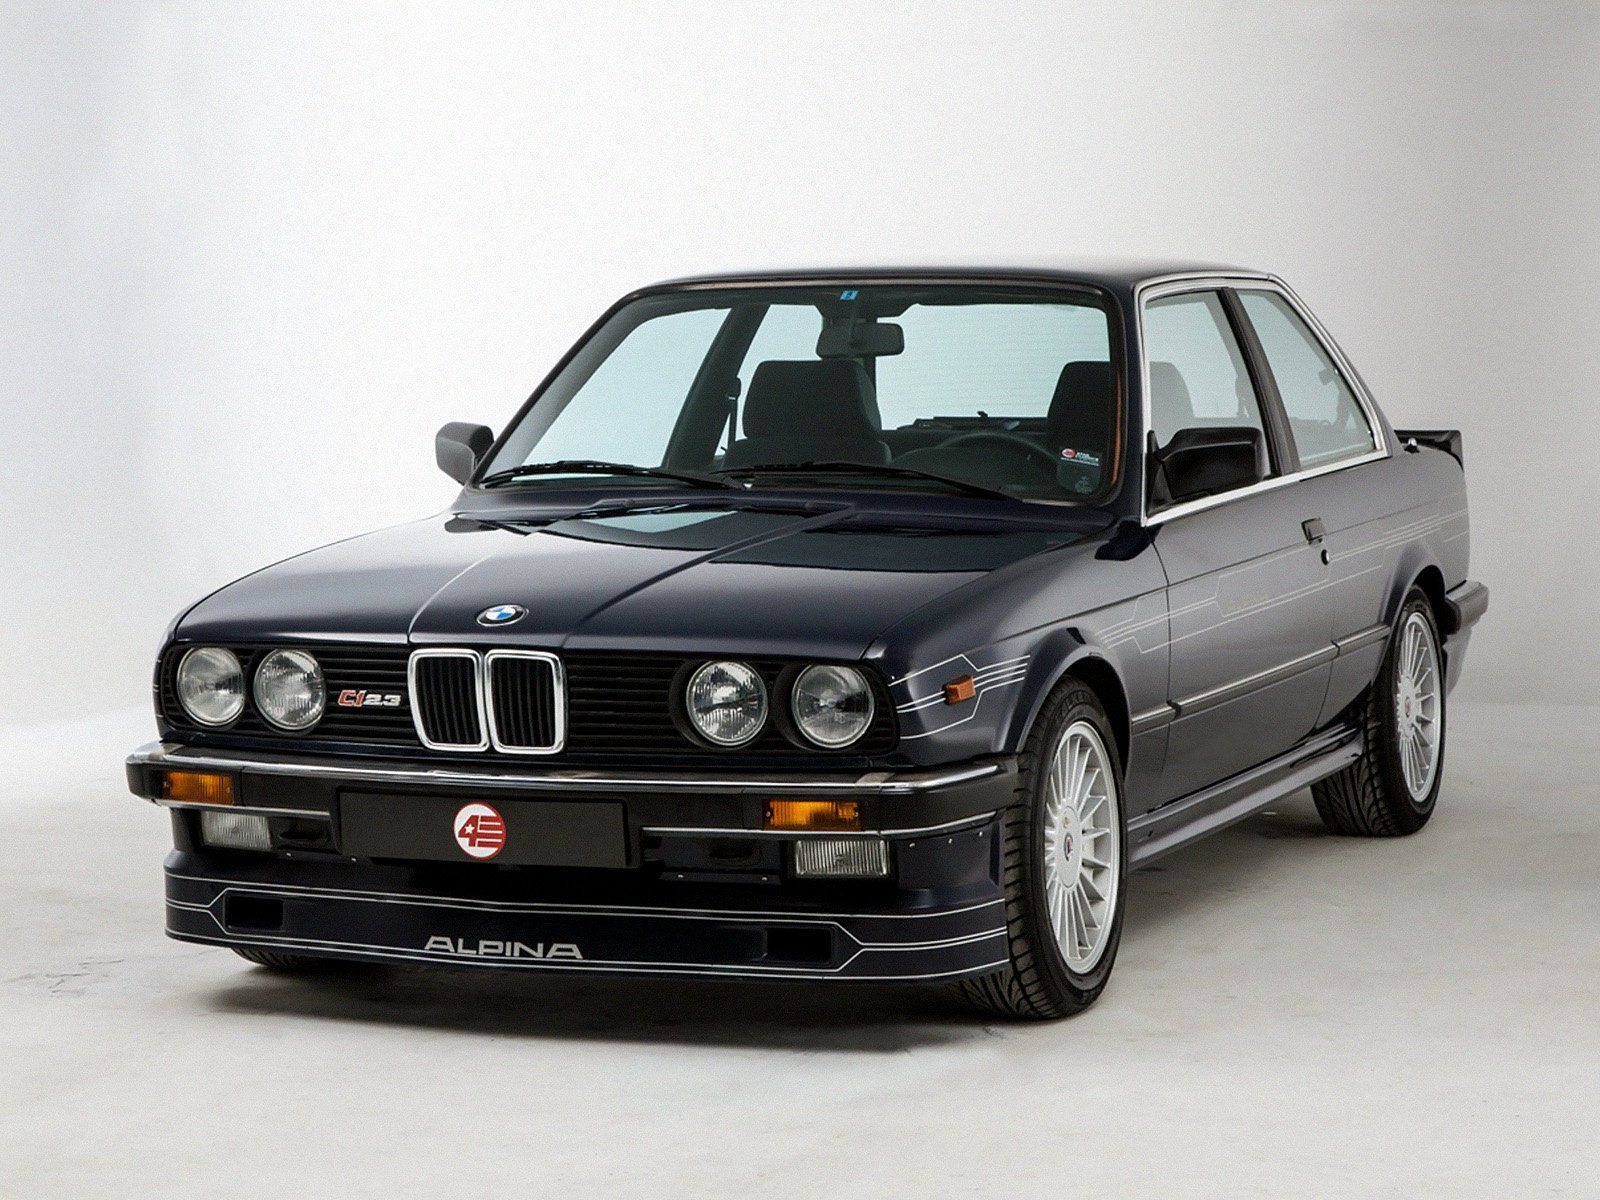 1983 alpina bmw e30 320i f german cars pinterest bmw e30 320i bmw e30 and e30. Black Bedroom Furniture Sets. Home Design Ideas